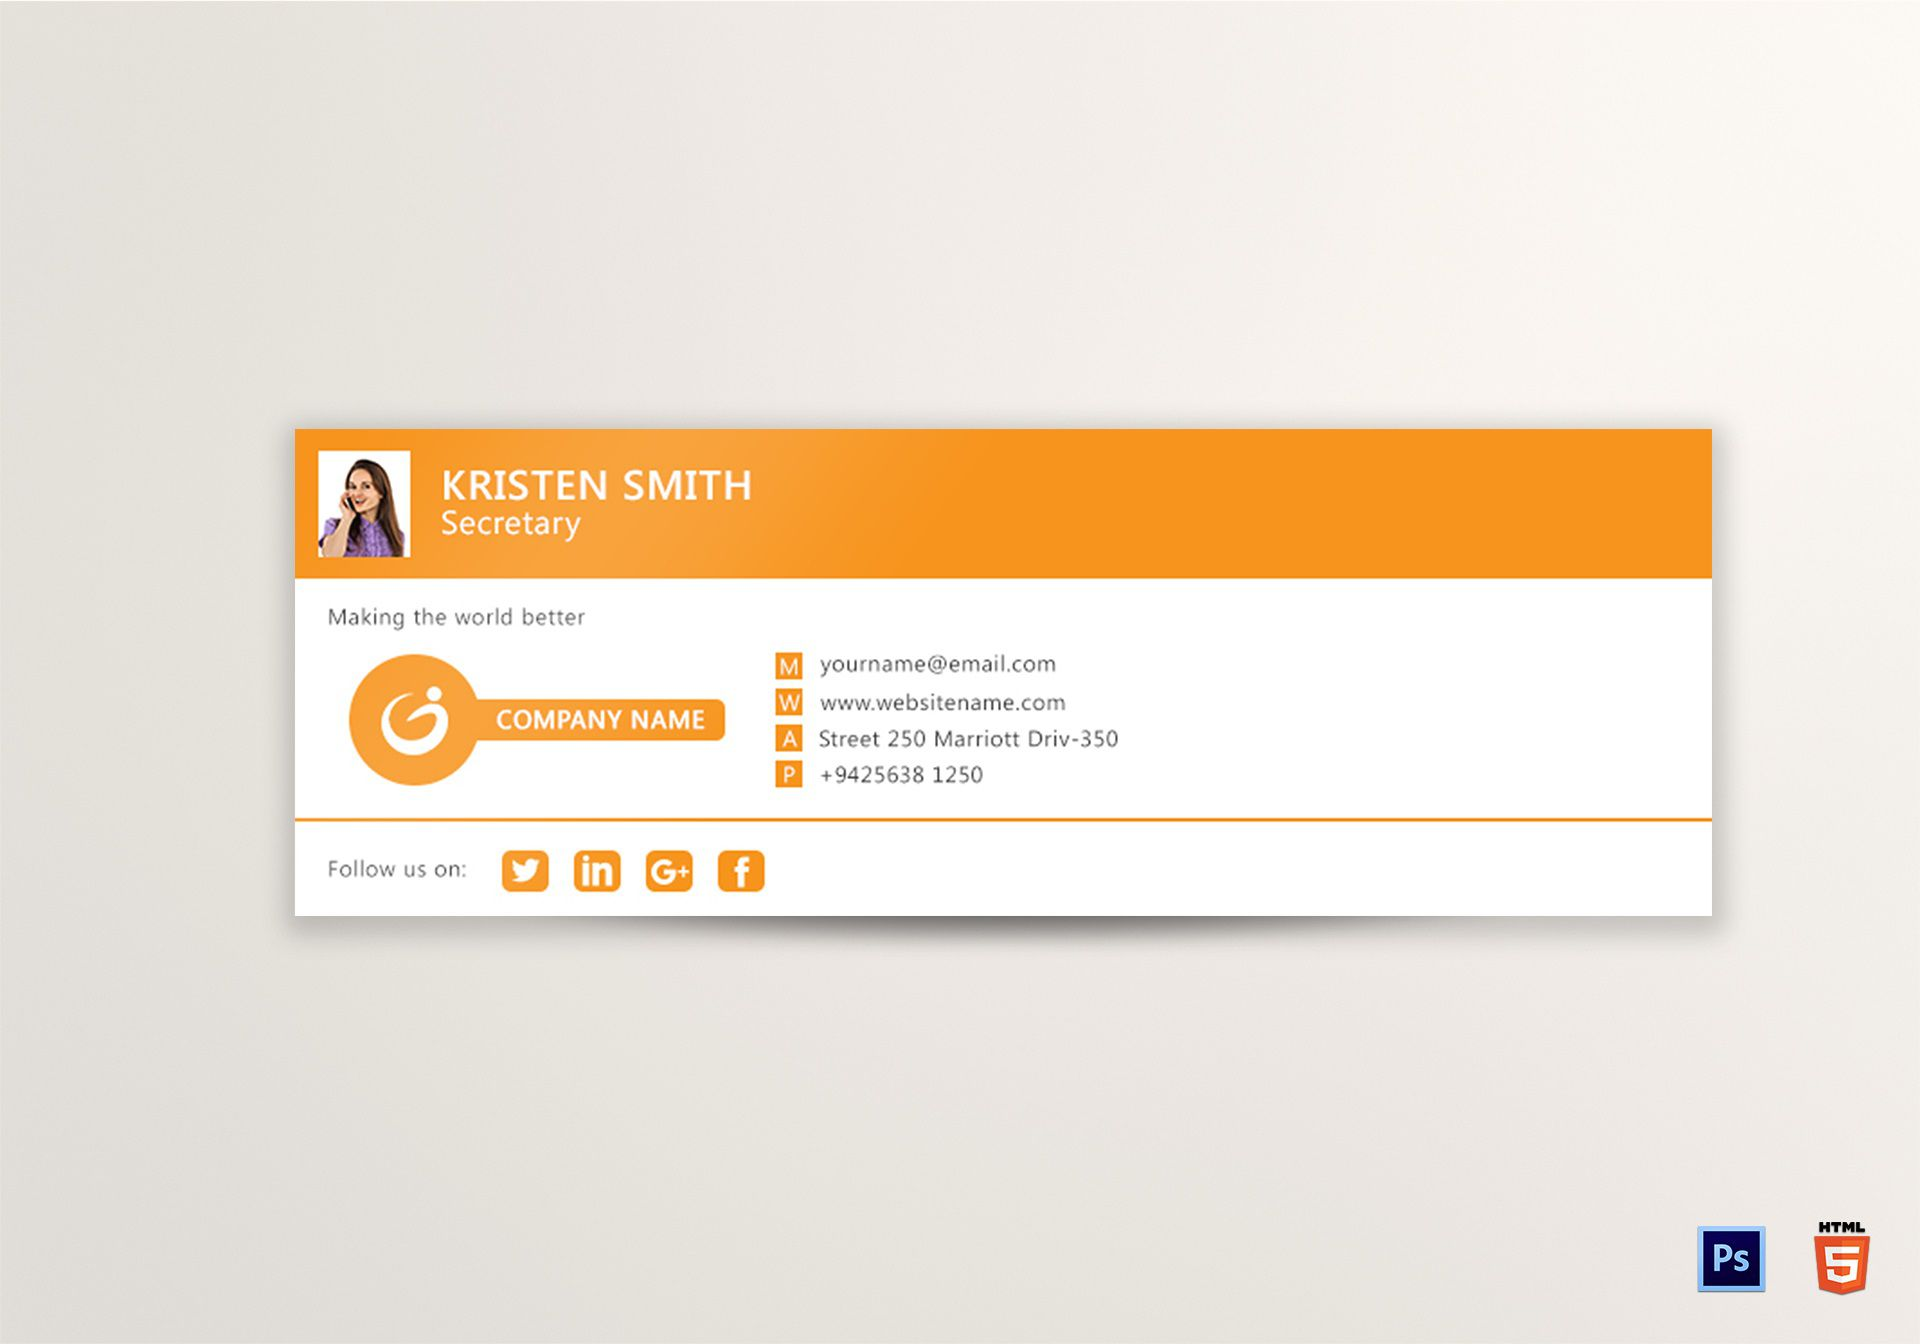 004 Imposing Outlook Email Signature Template High Def  Example Free Download BestFull